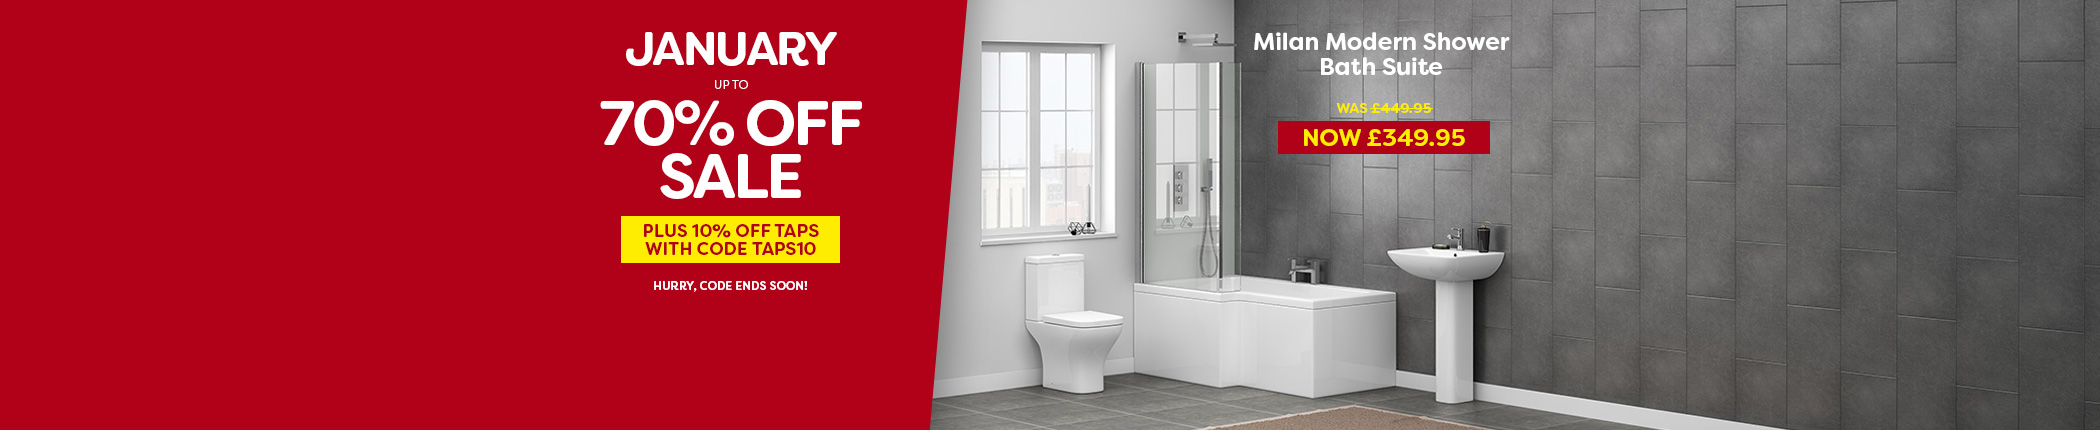 january-sale-10-off-taps-milan-modern-shower-bath-suite-countdown-jan18-hbnr